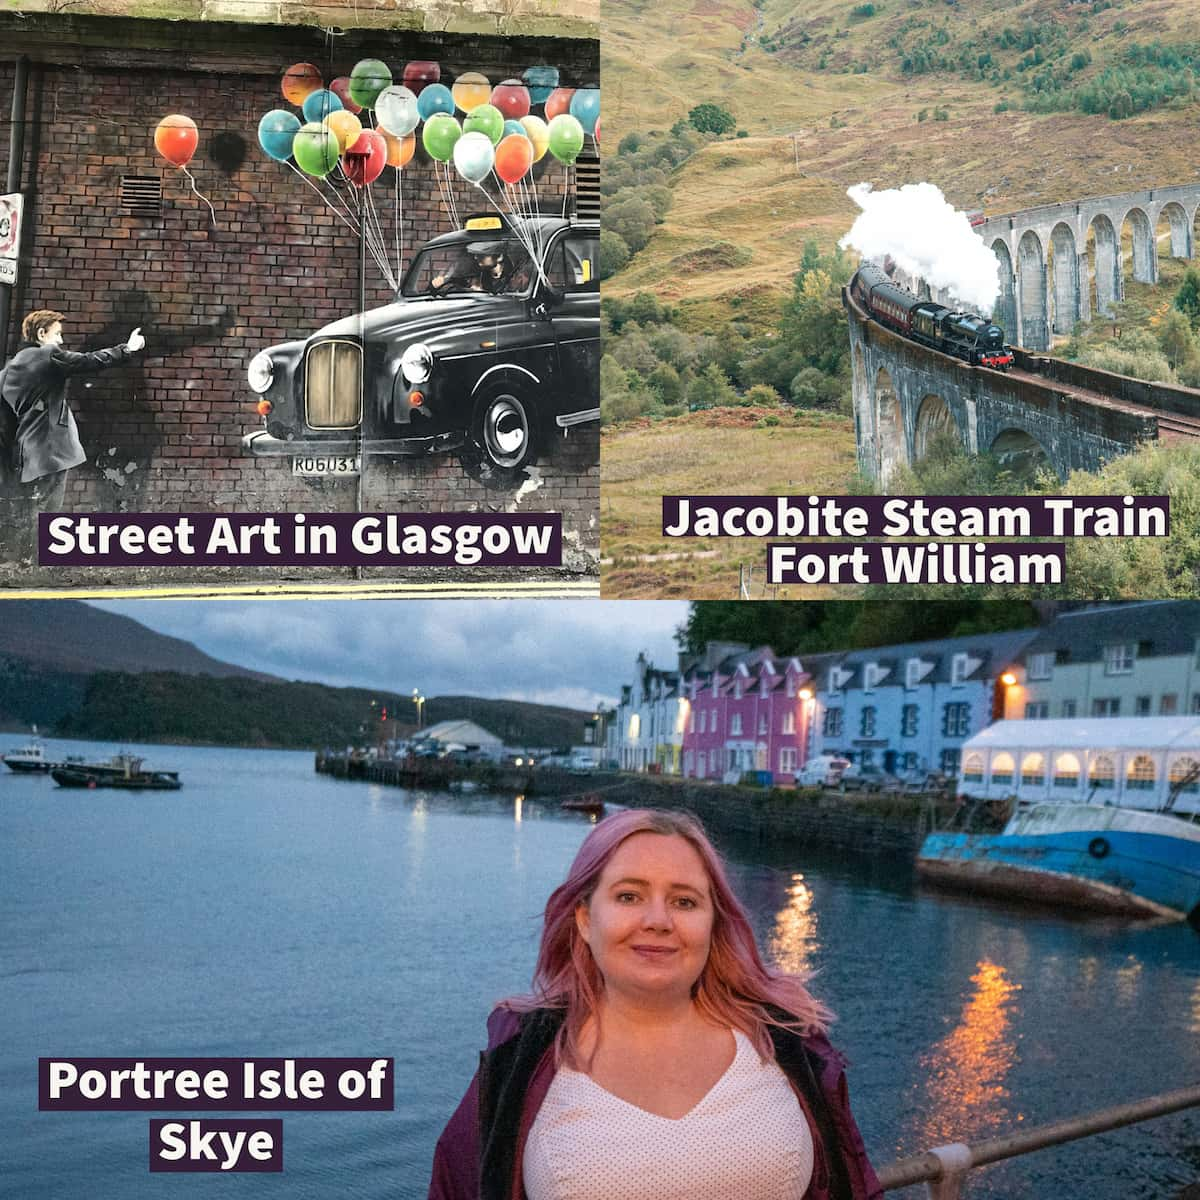 Top left street art in Glasgow, top right Jacobite stream train going over the bridge in Fort William.